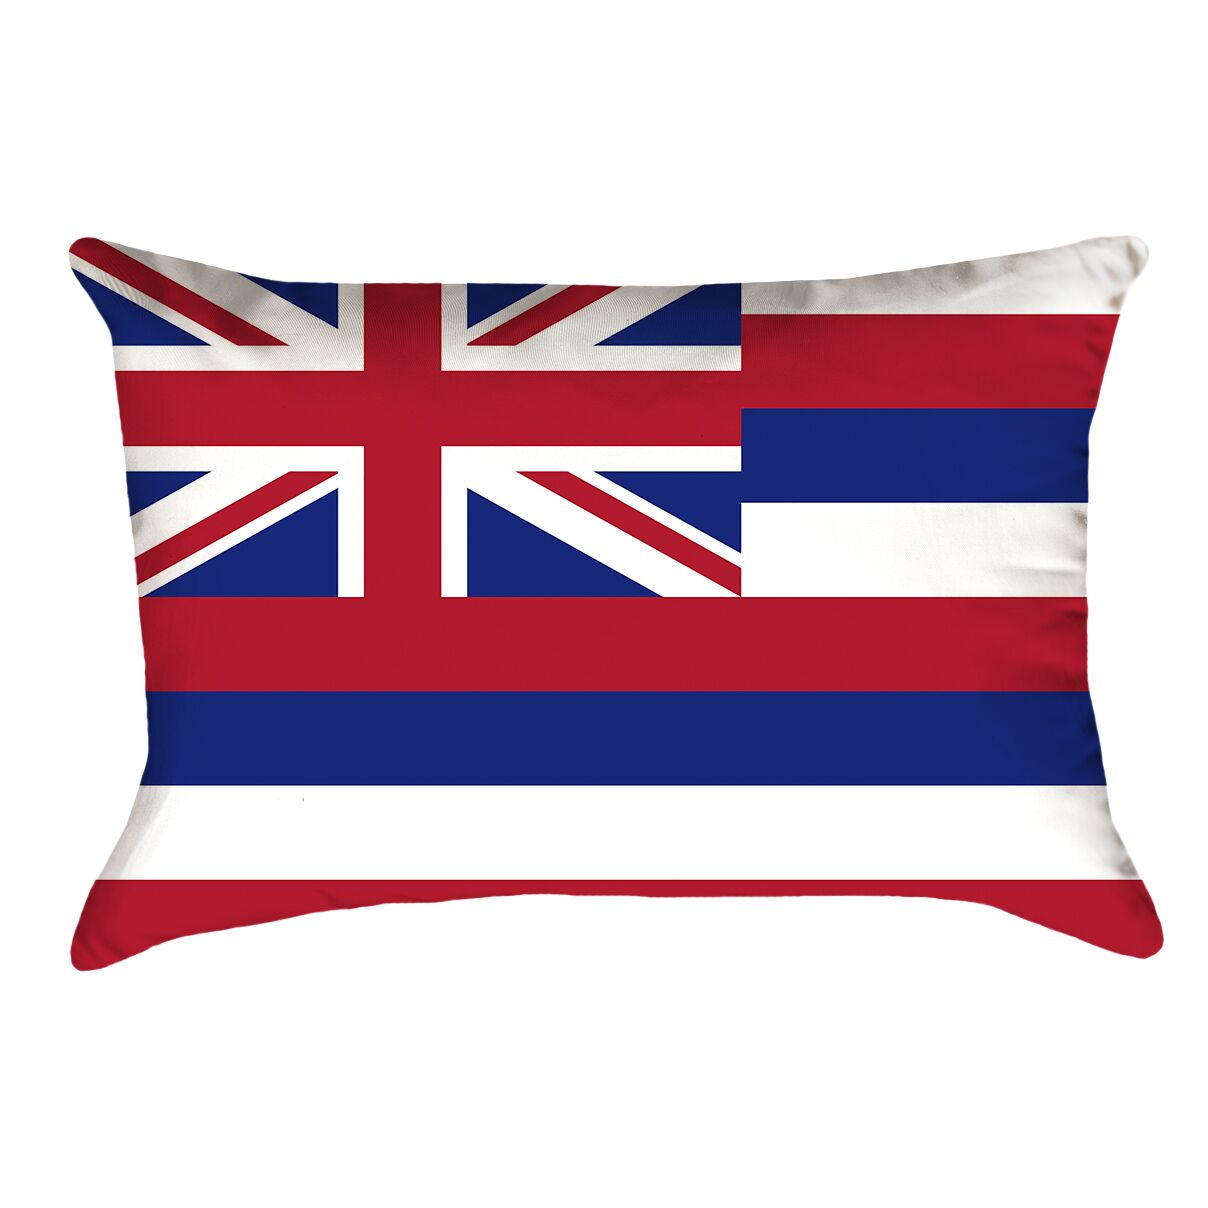 Centers Hawaii Flag Pillow Material/Product Type: Cotton Twill Double Sided Print/Lumbar Pillow